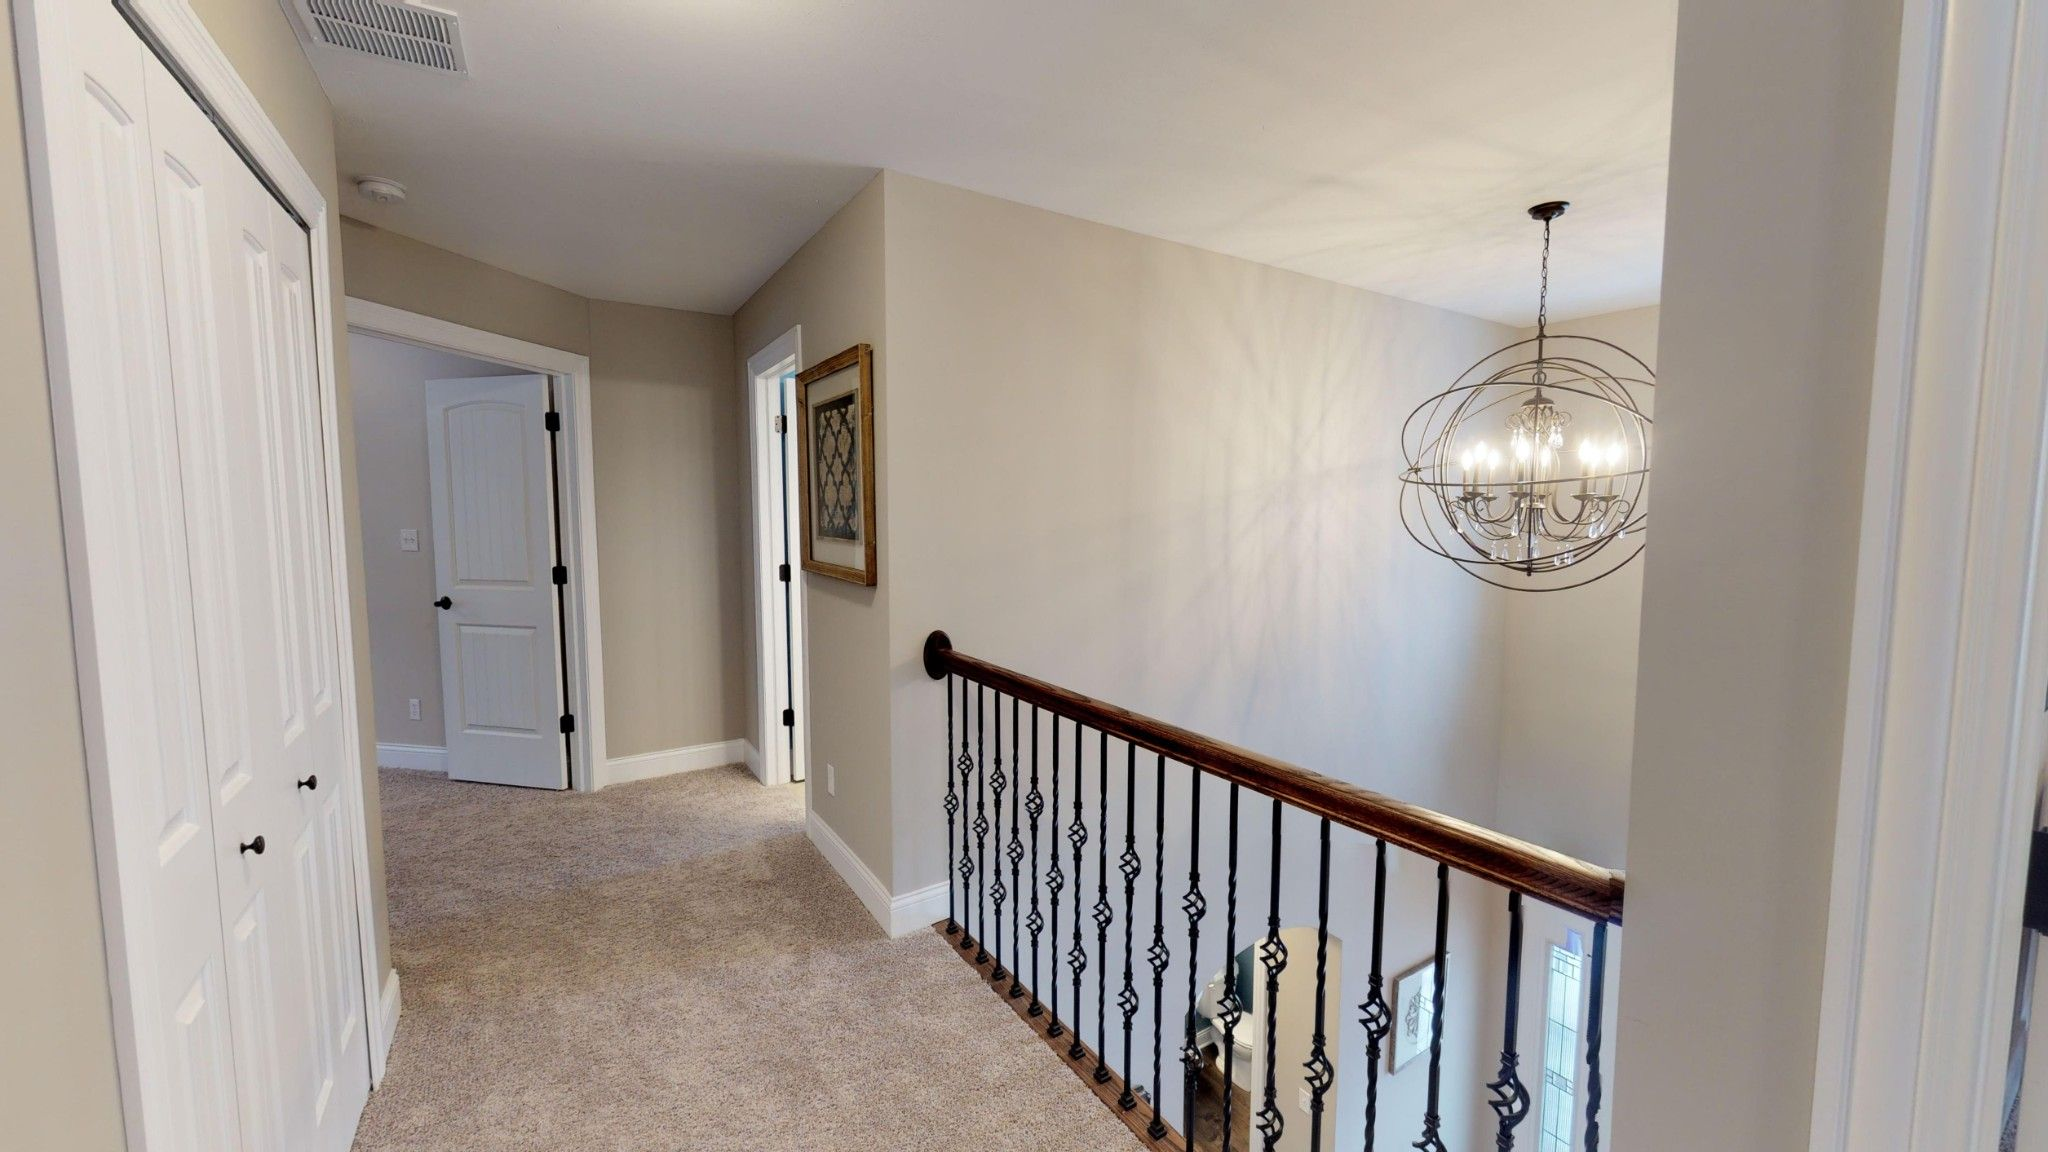 Living Area featured in the Cordera By Olthof Homes in Gary, IN